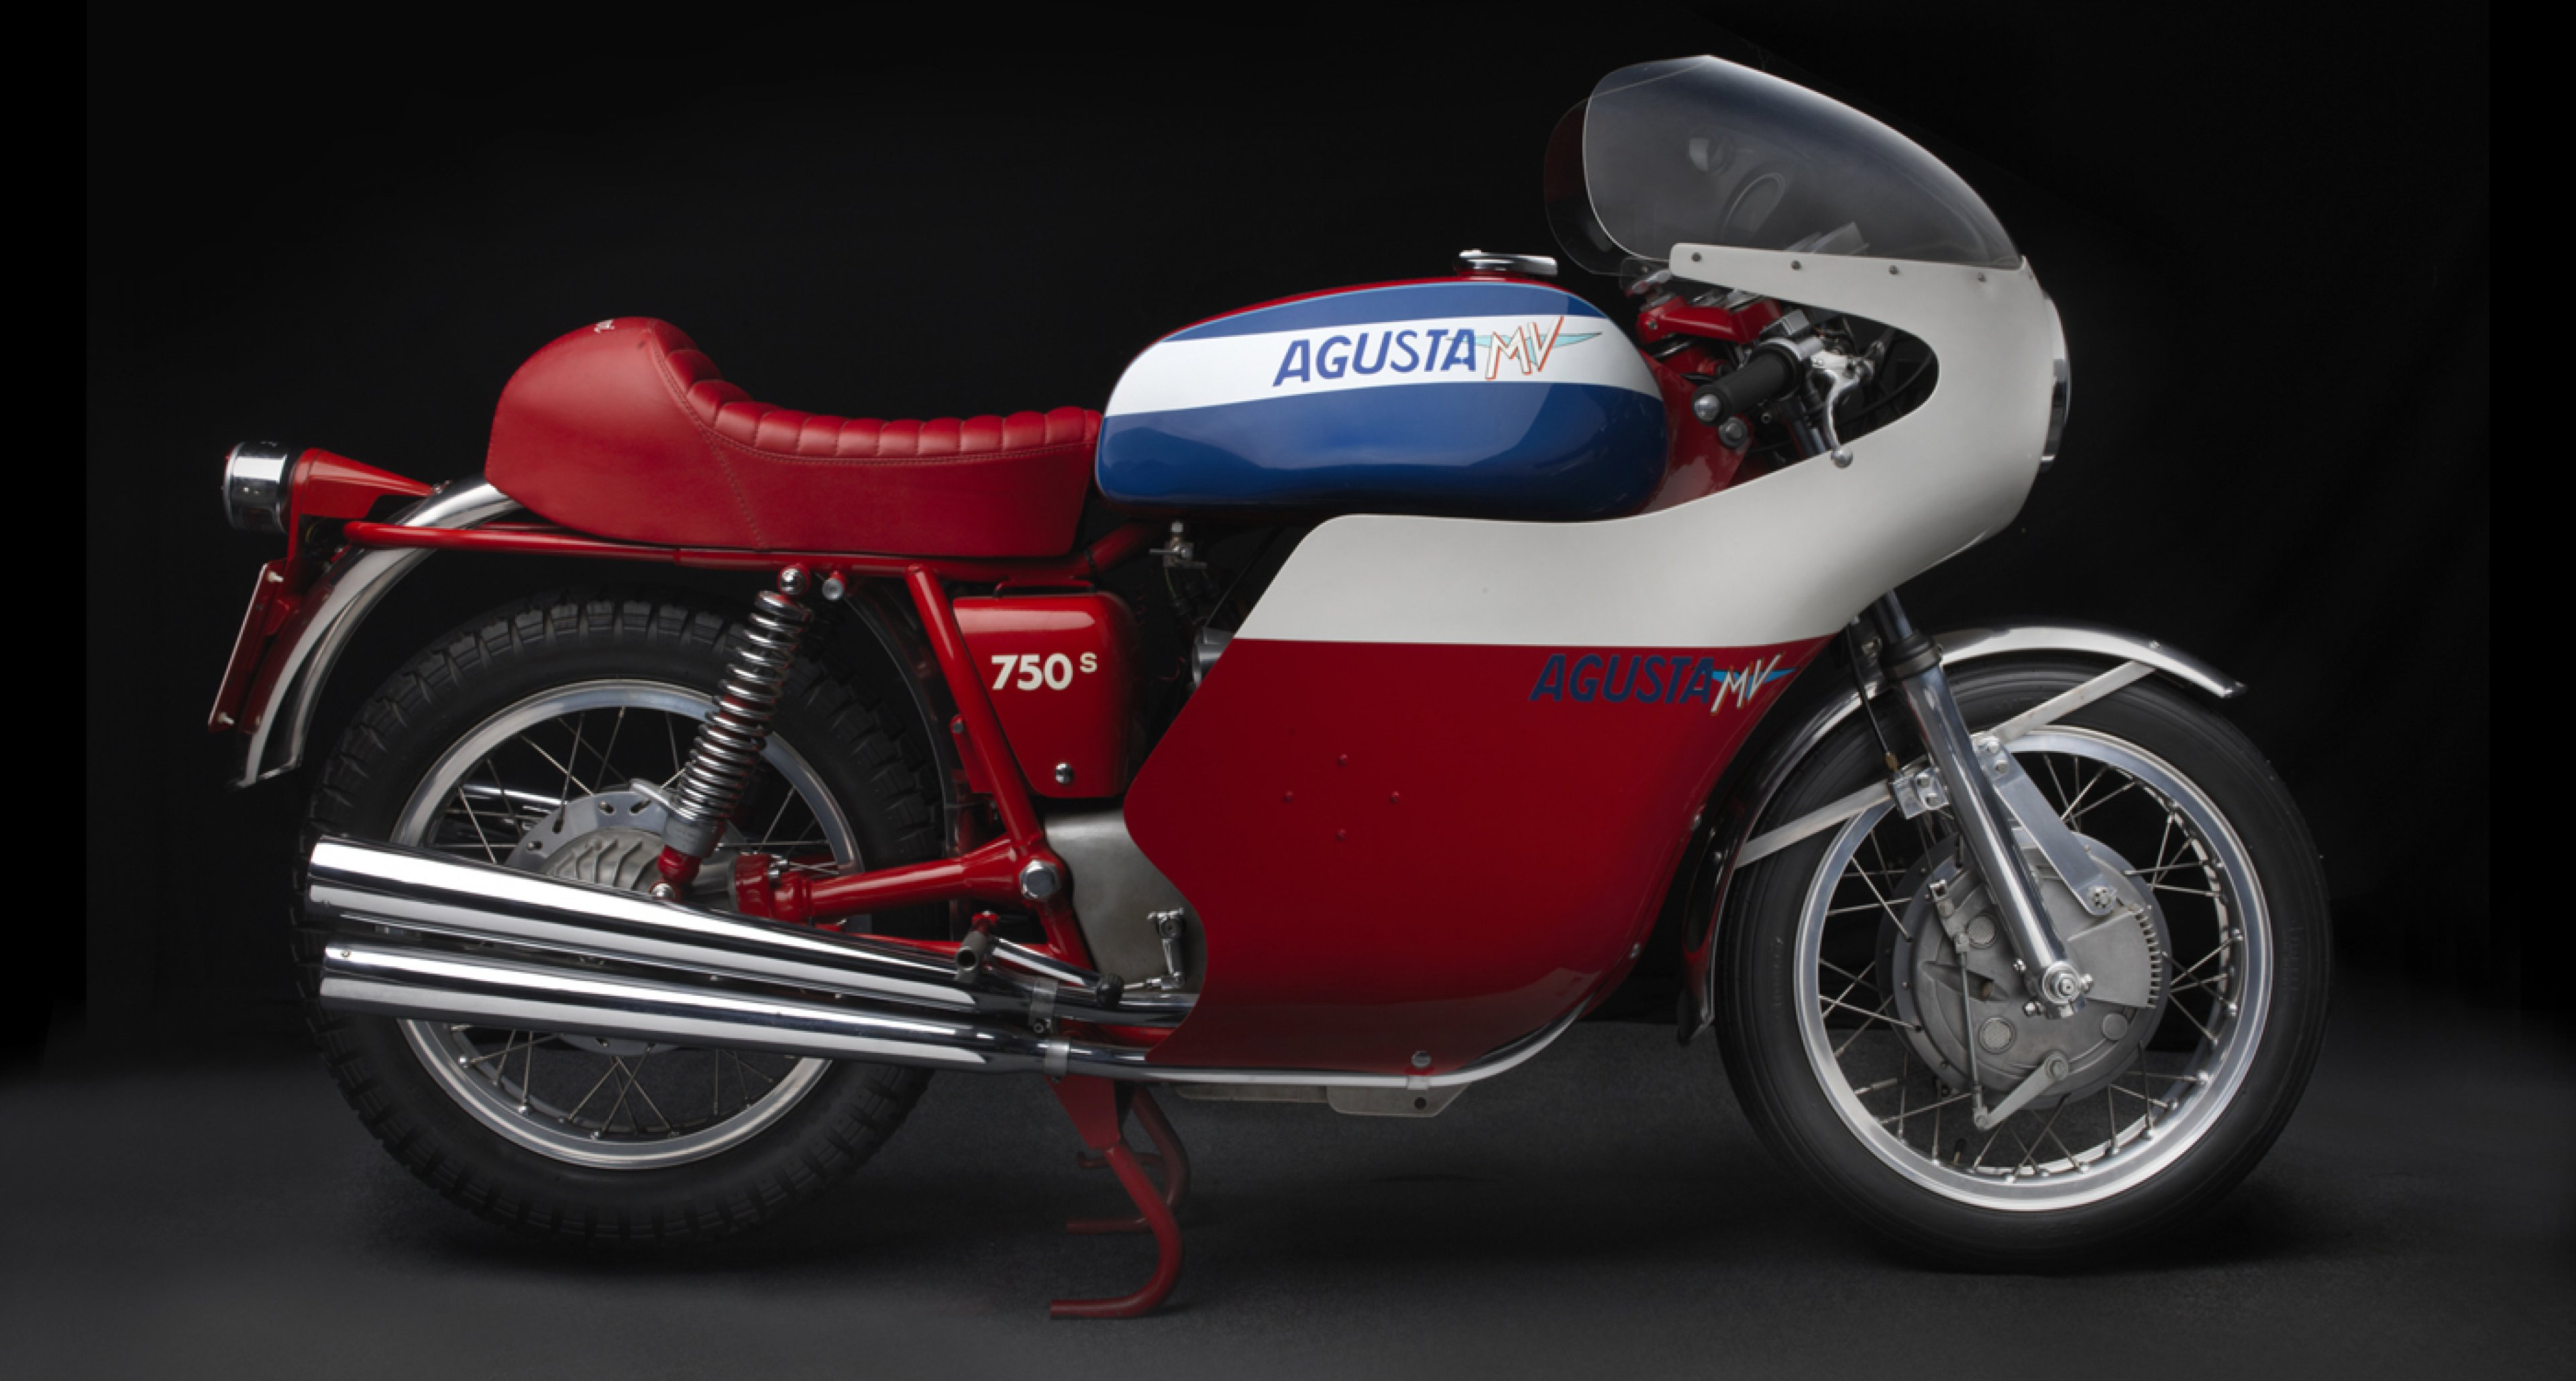 MV Agusta 750 America. Collection of Peter Calles. Image © 2015 Peter Harholdt